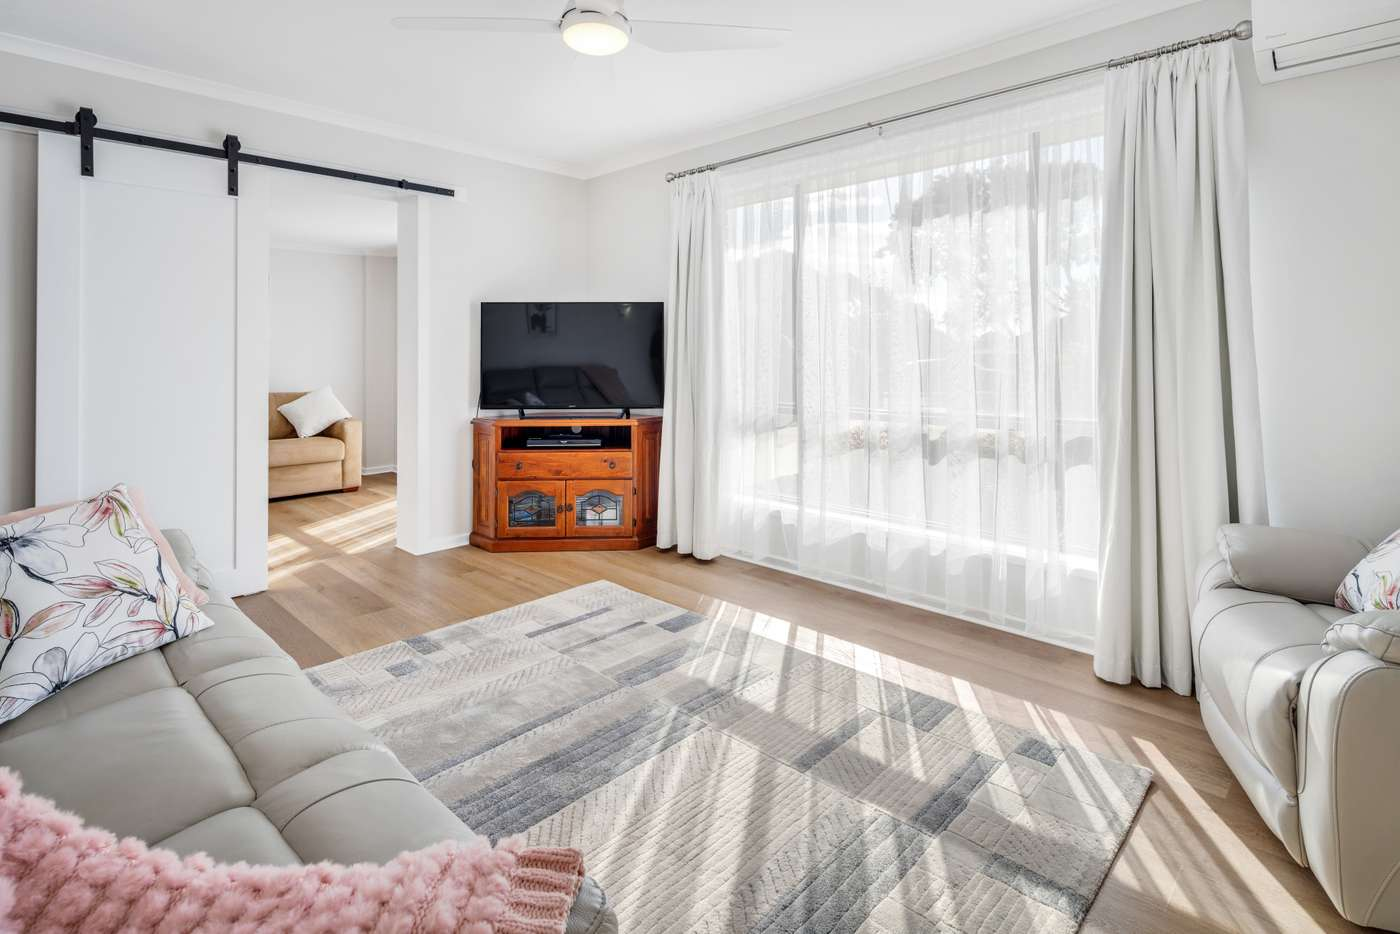 Fifth view of Homely house listing, 33 Campus Drive, Aberfoyle Park SA 5159